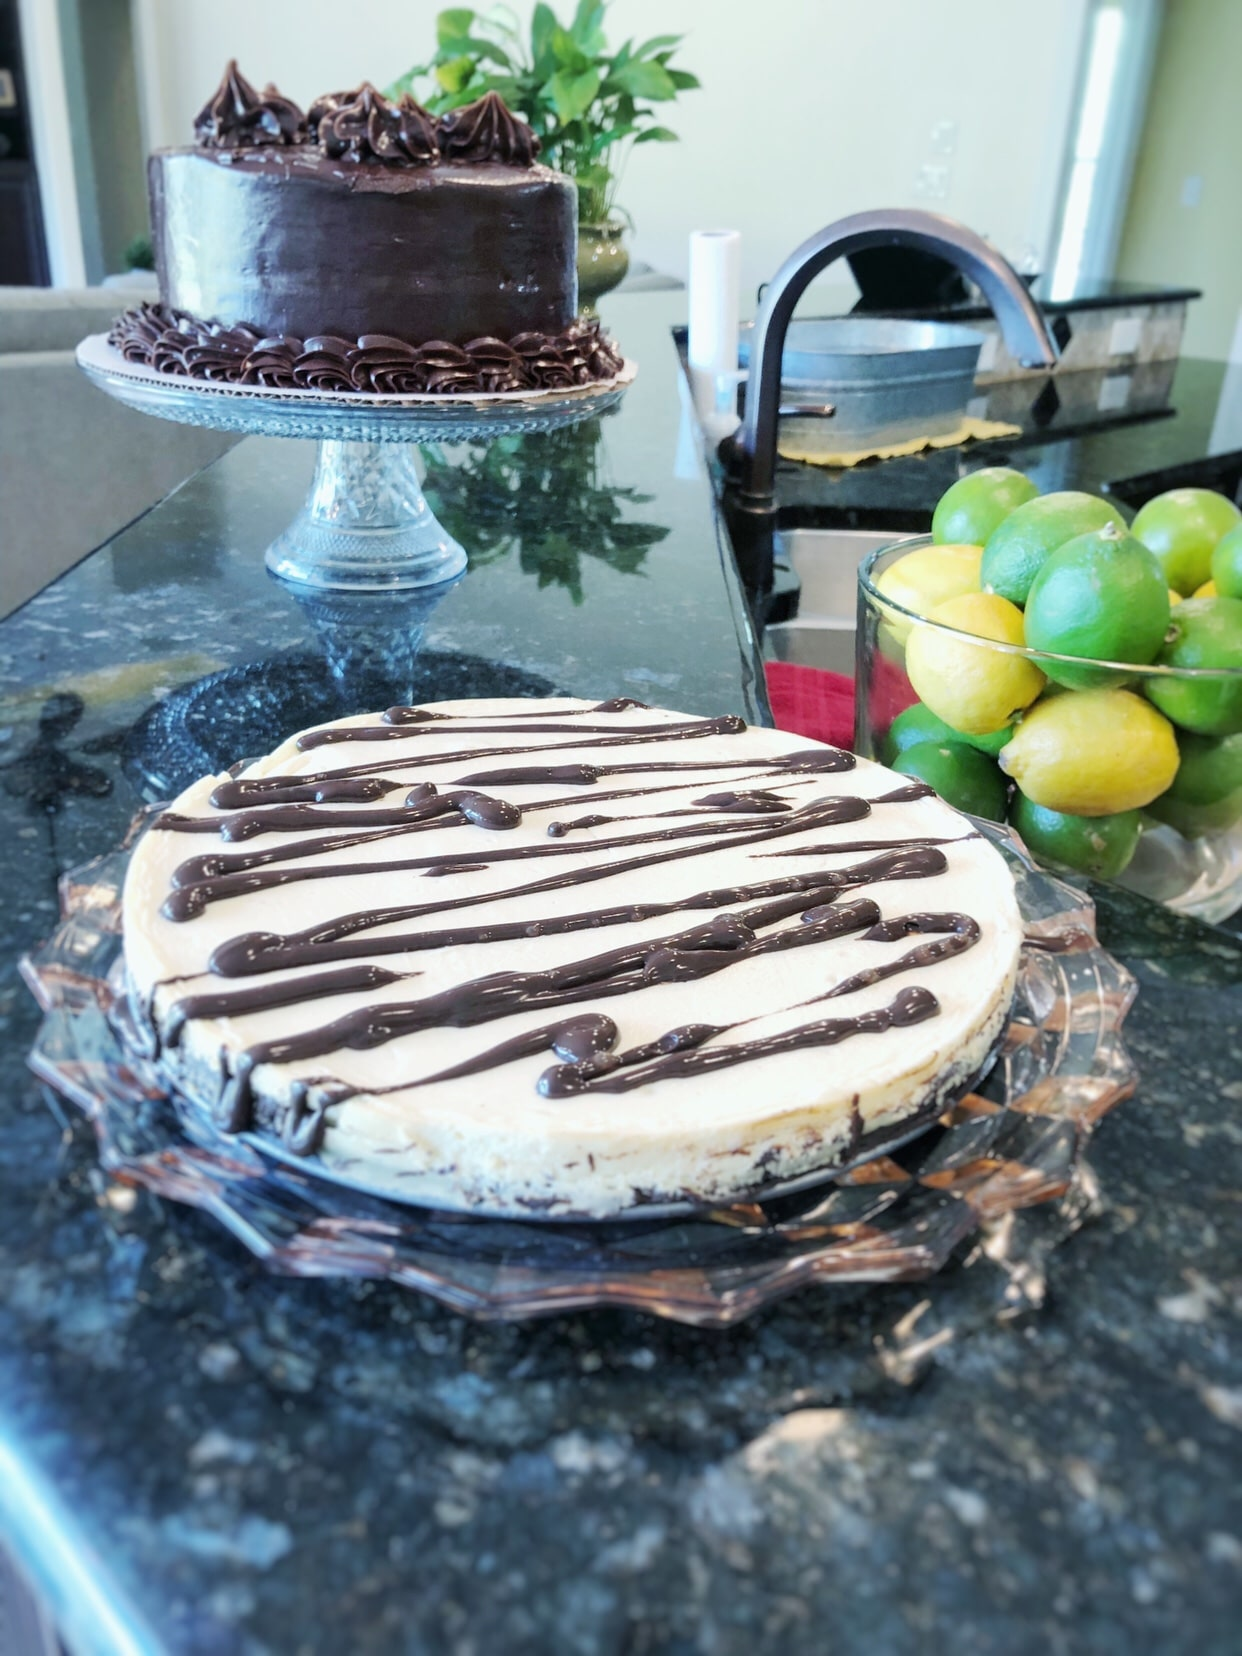 Keto Brownie Cheesecake, low carb, yellow lemons, green limes, plastic plate on a black marble counter, birthday, whole chocolate cake, kitchen